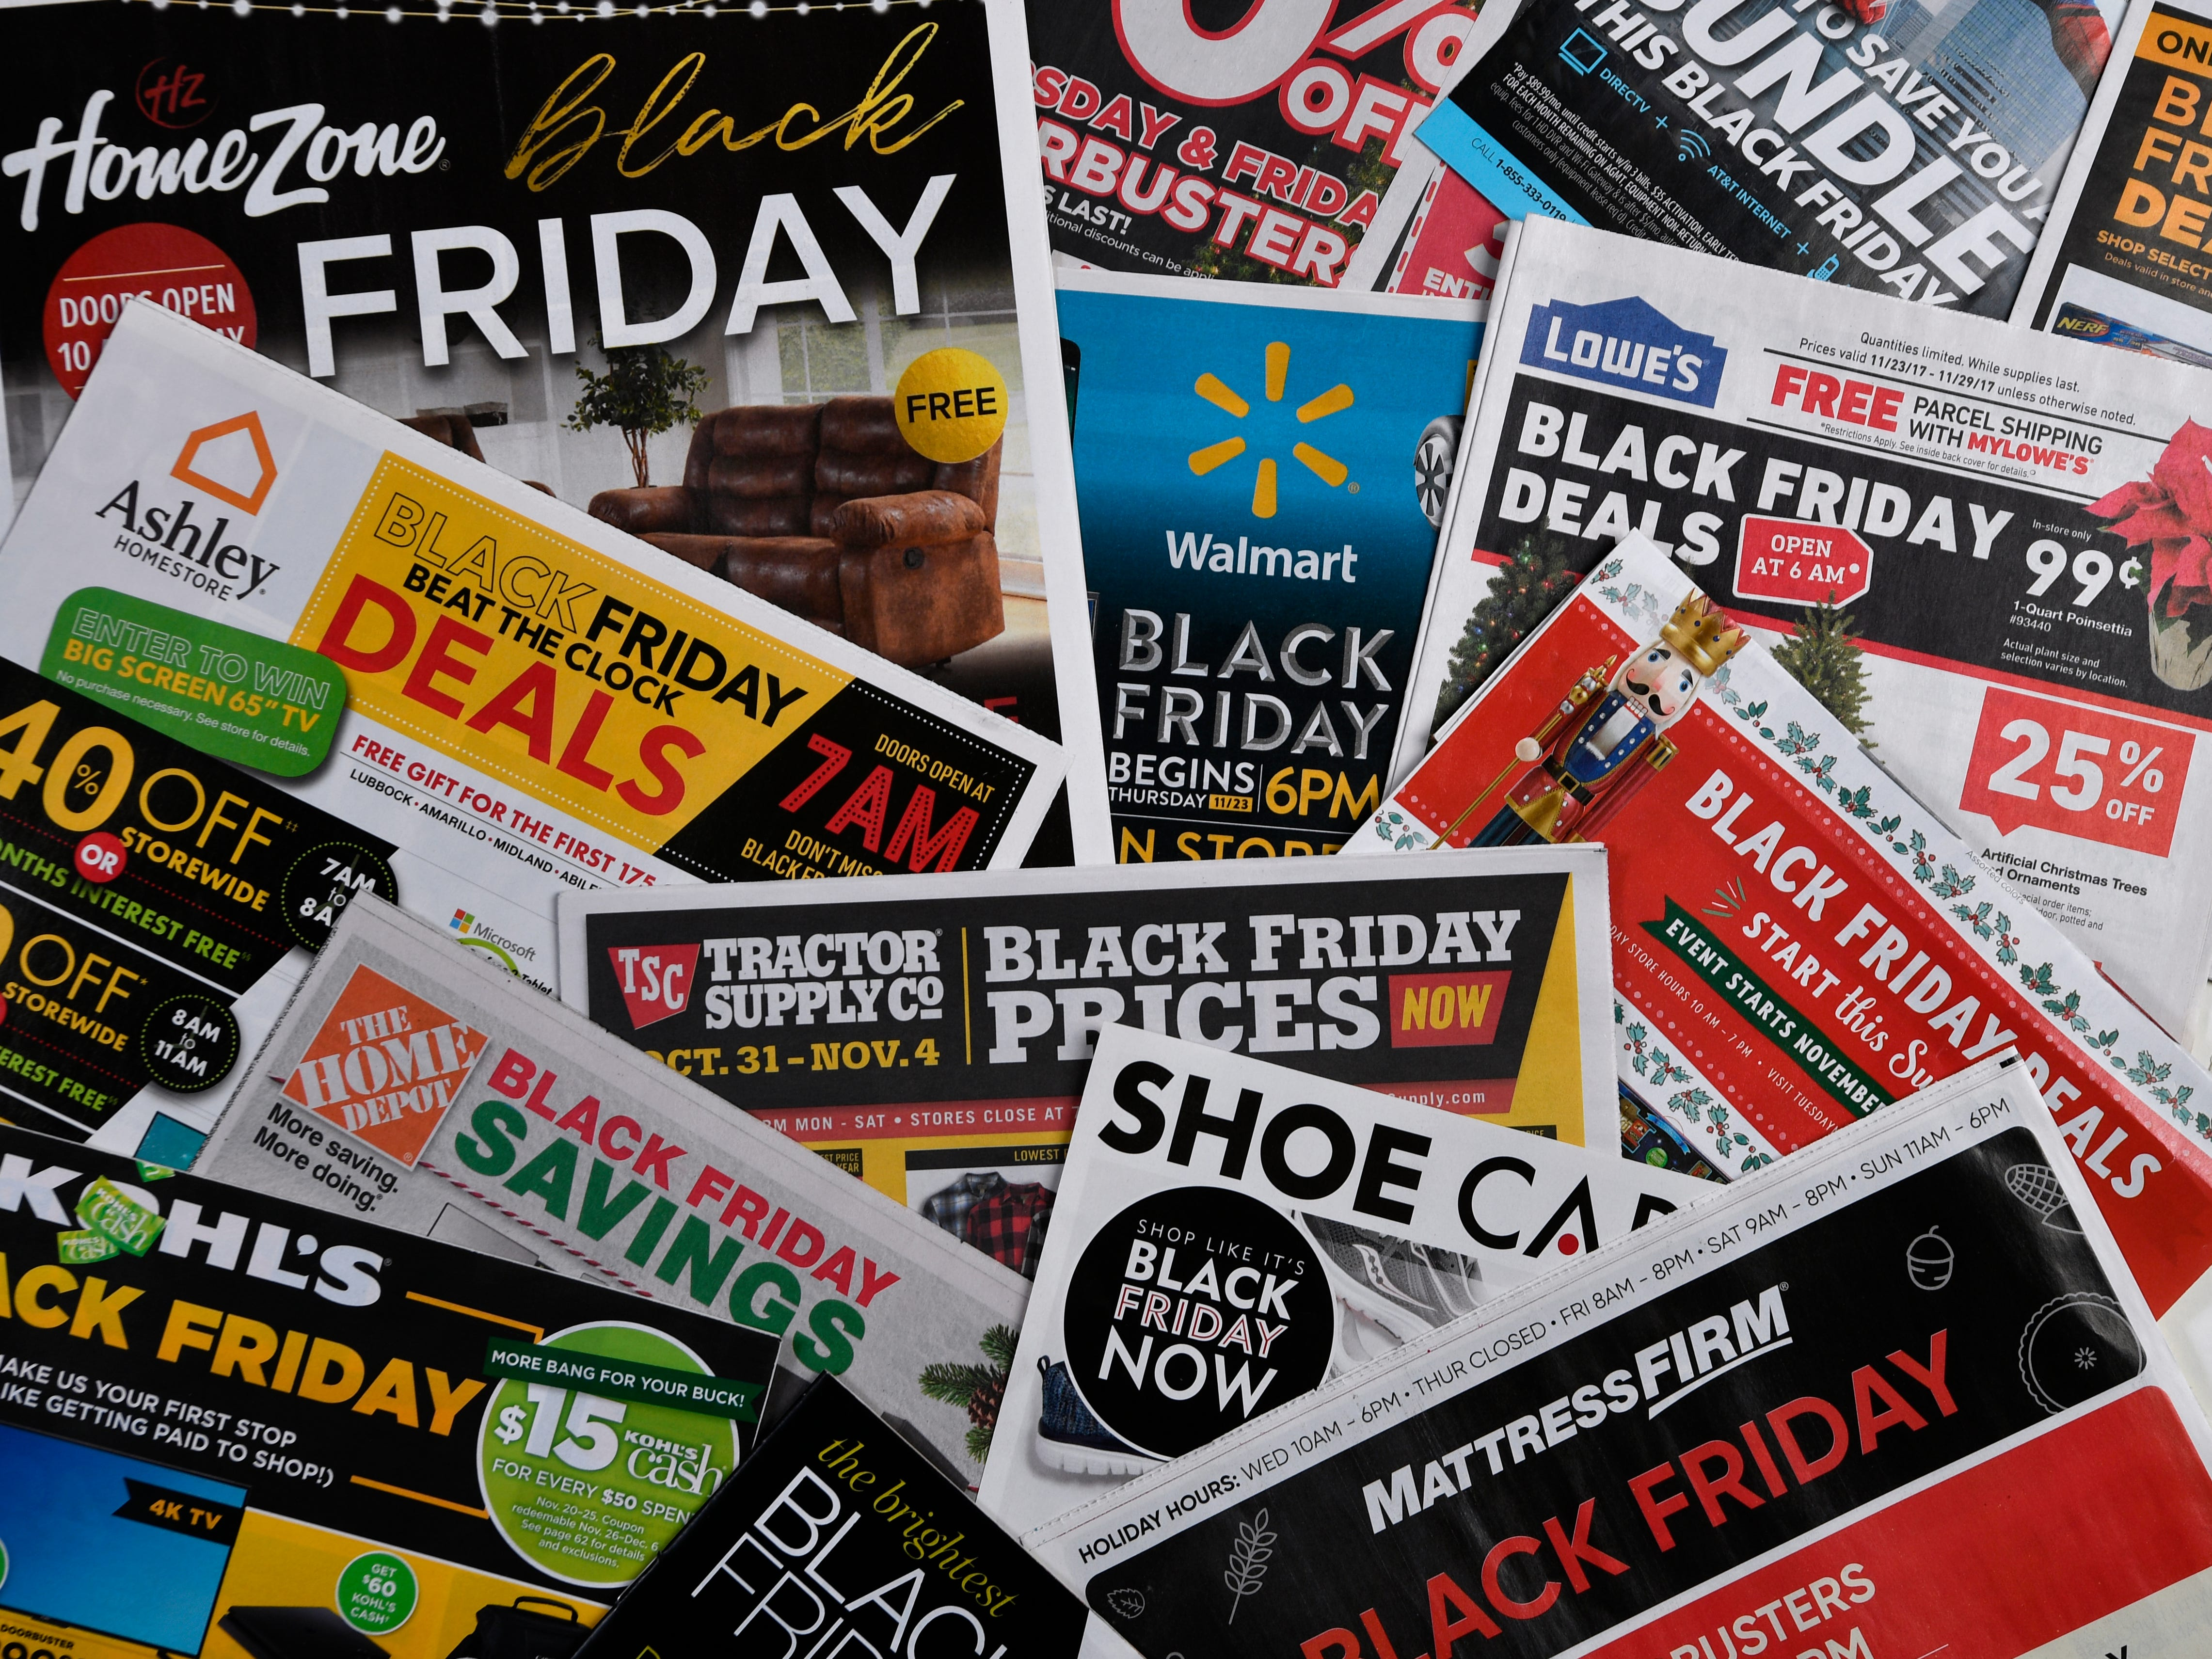 Black Friday is changing, but the shop-a-thon's spirit is still going strong